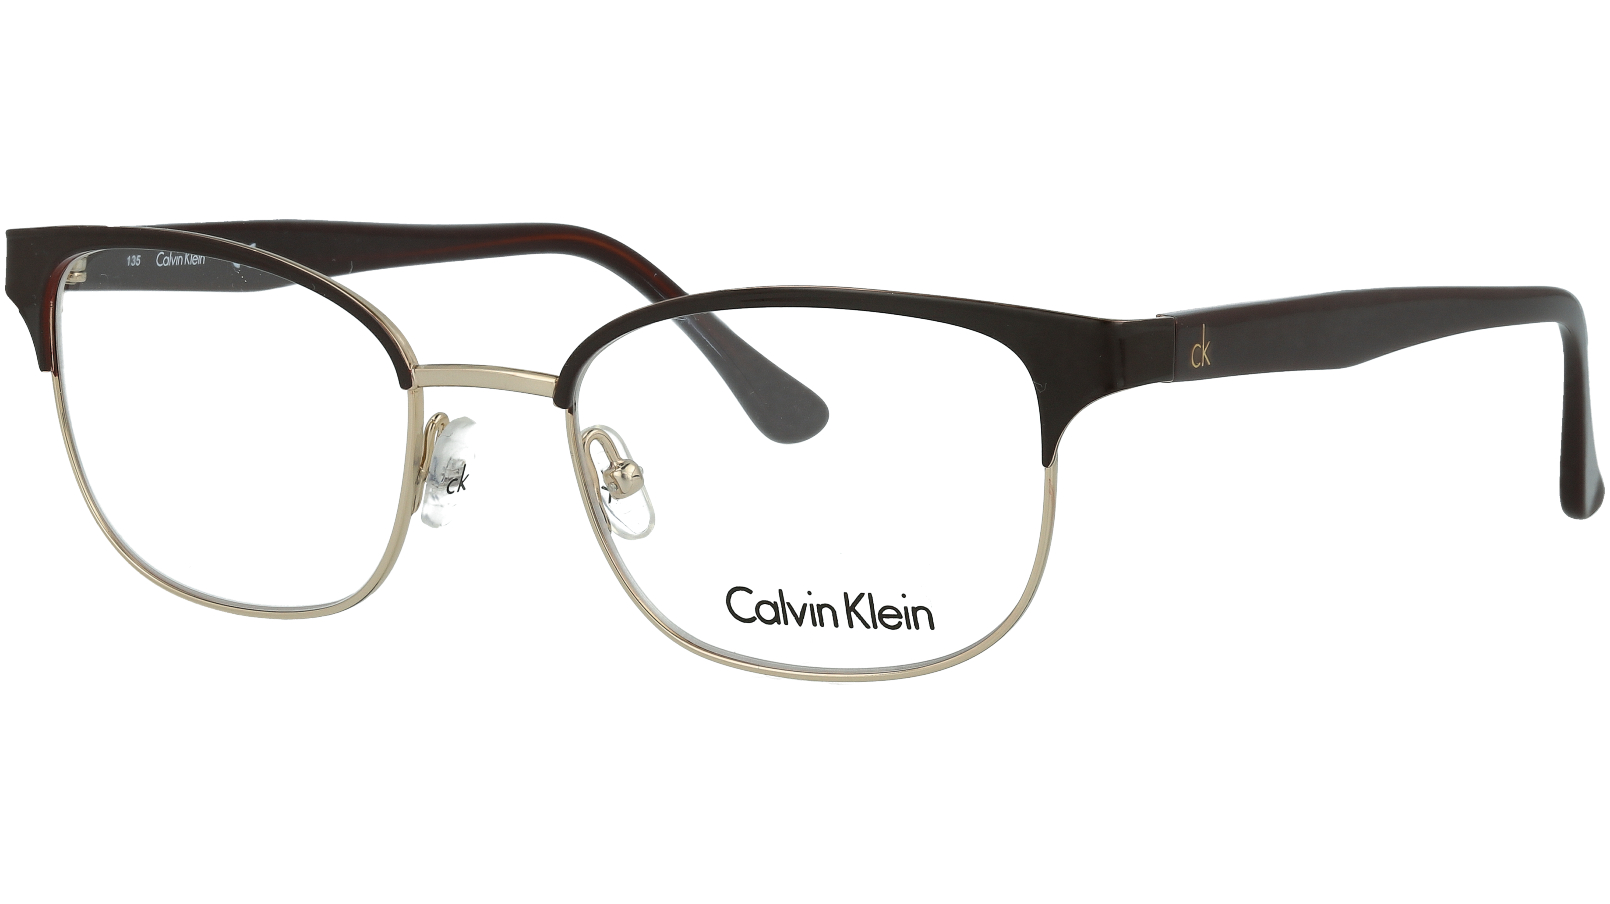 CALVIN KLEIN CK5445 210 51 BROWN Glasses